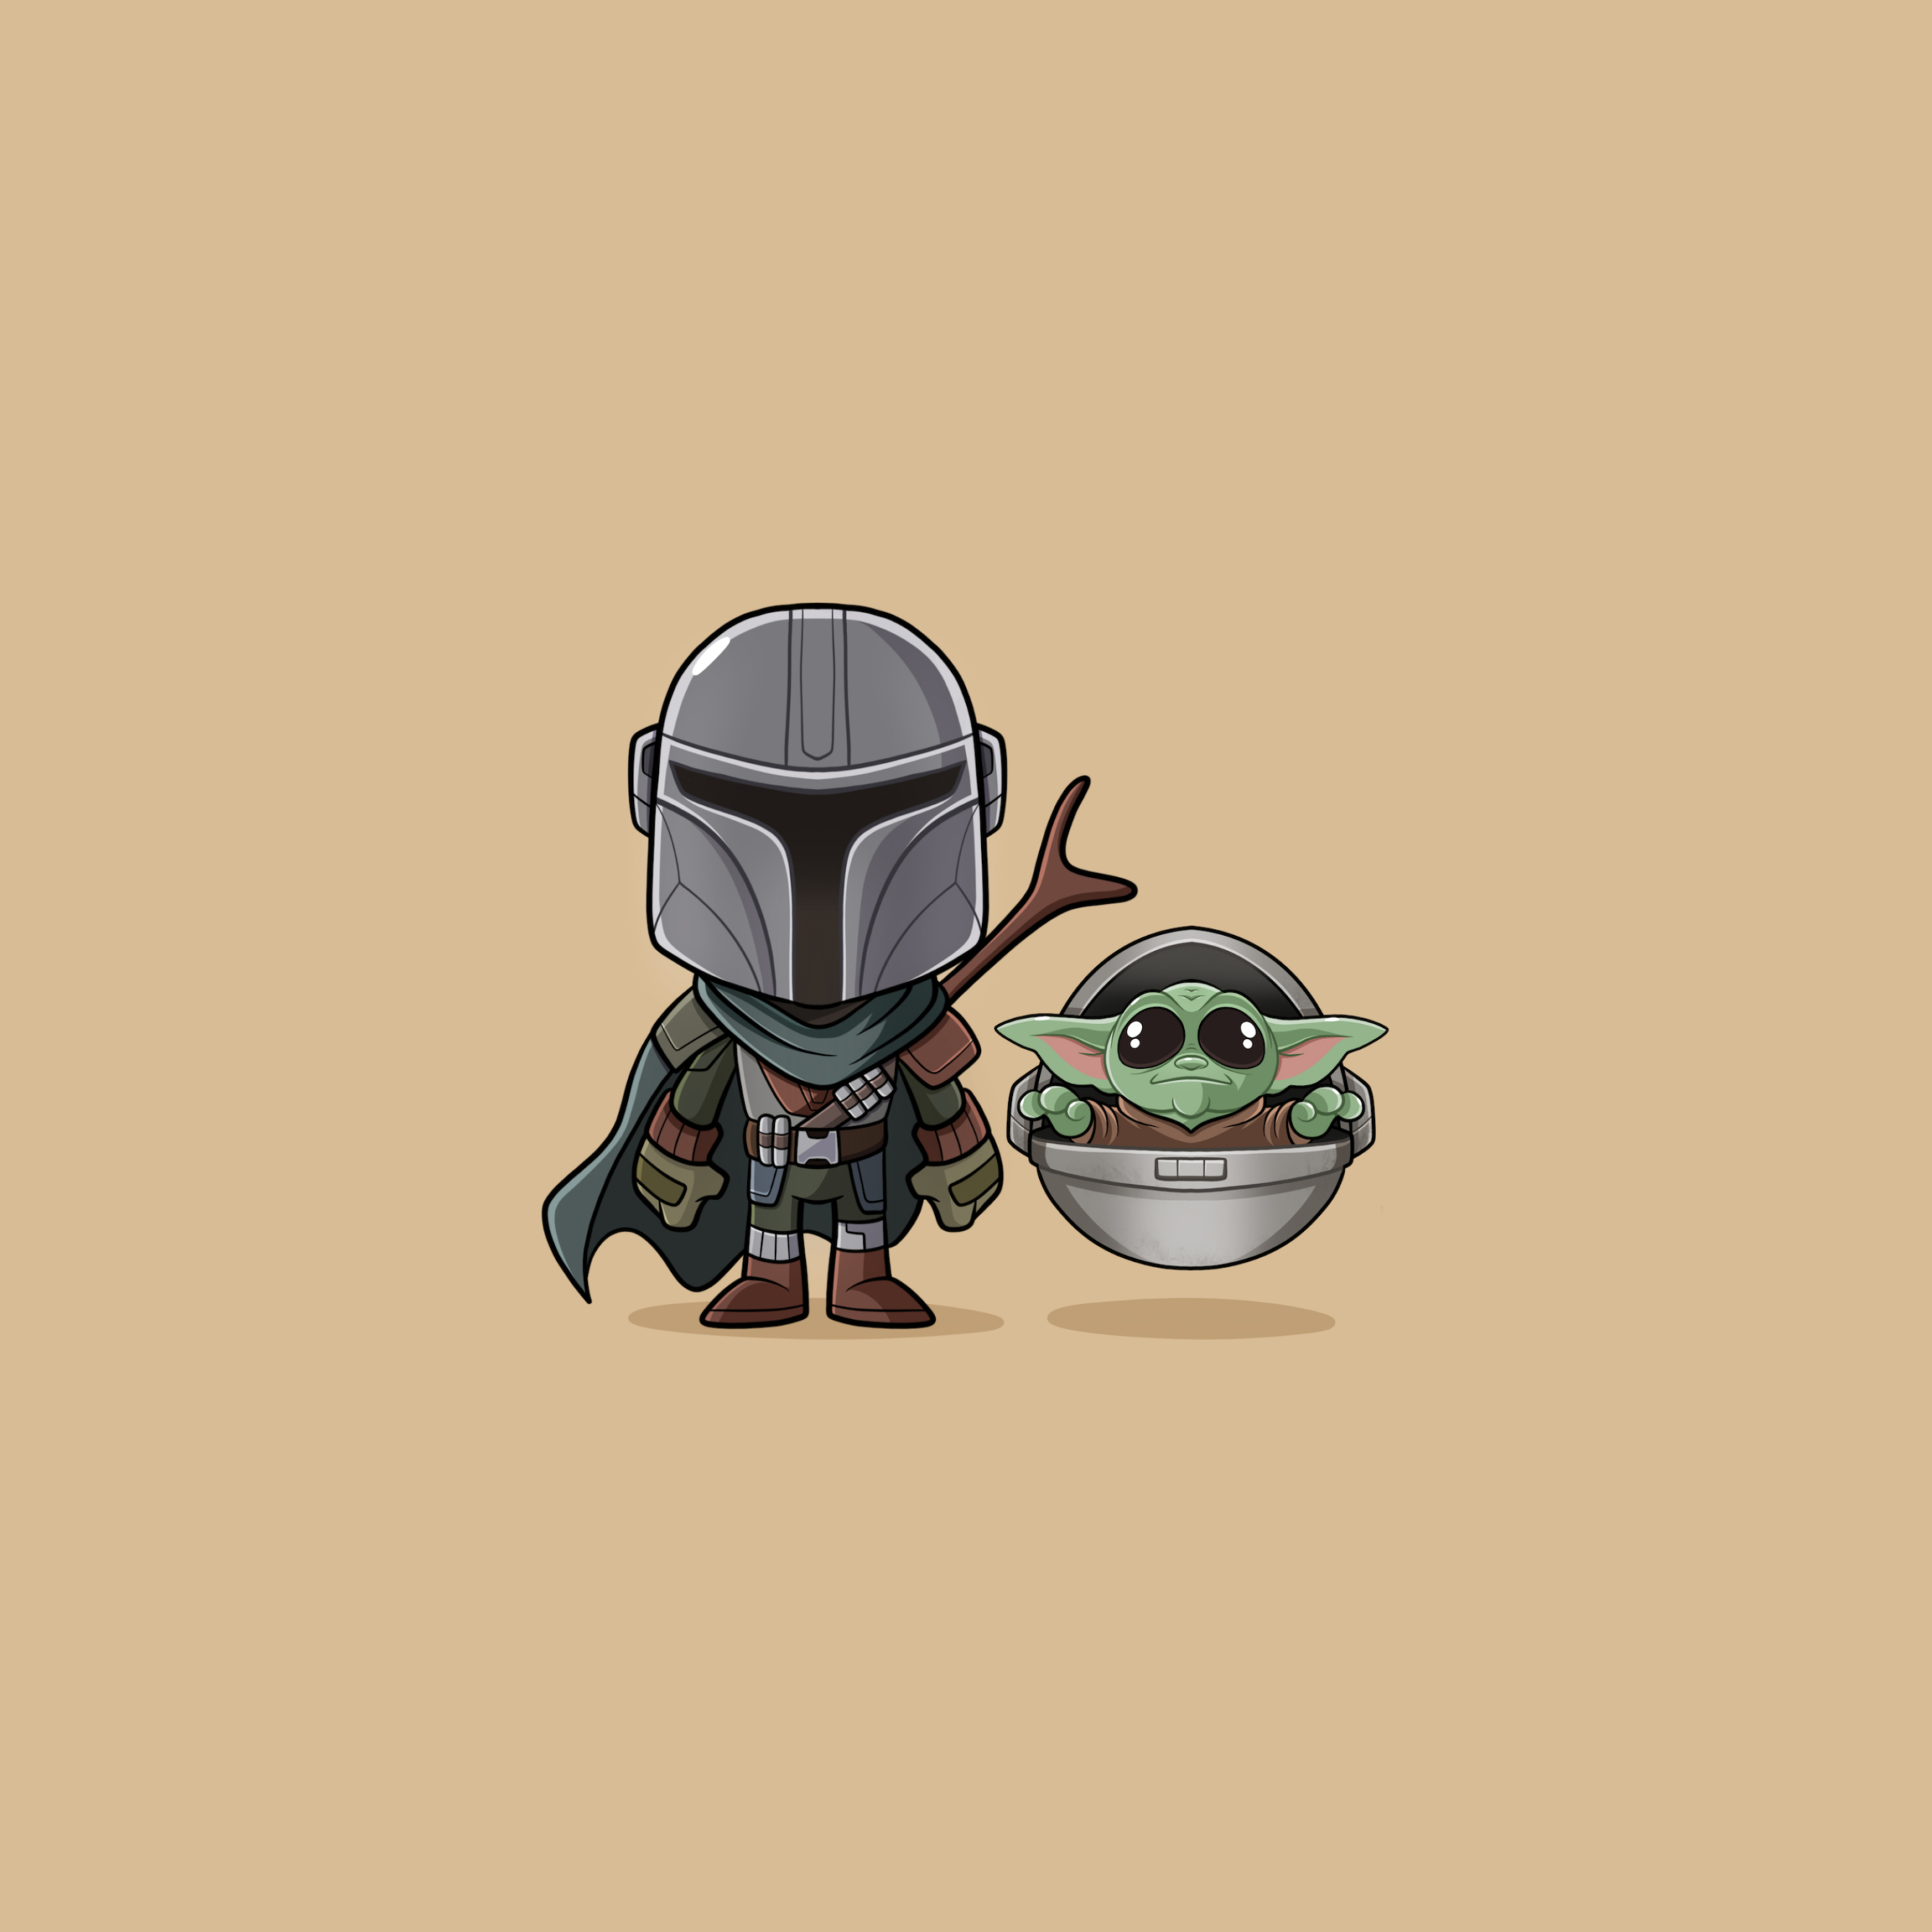 wallpapersden.com baby yoda and mandalorian 2932x2932 scaled